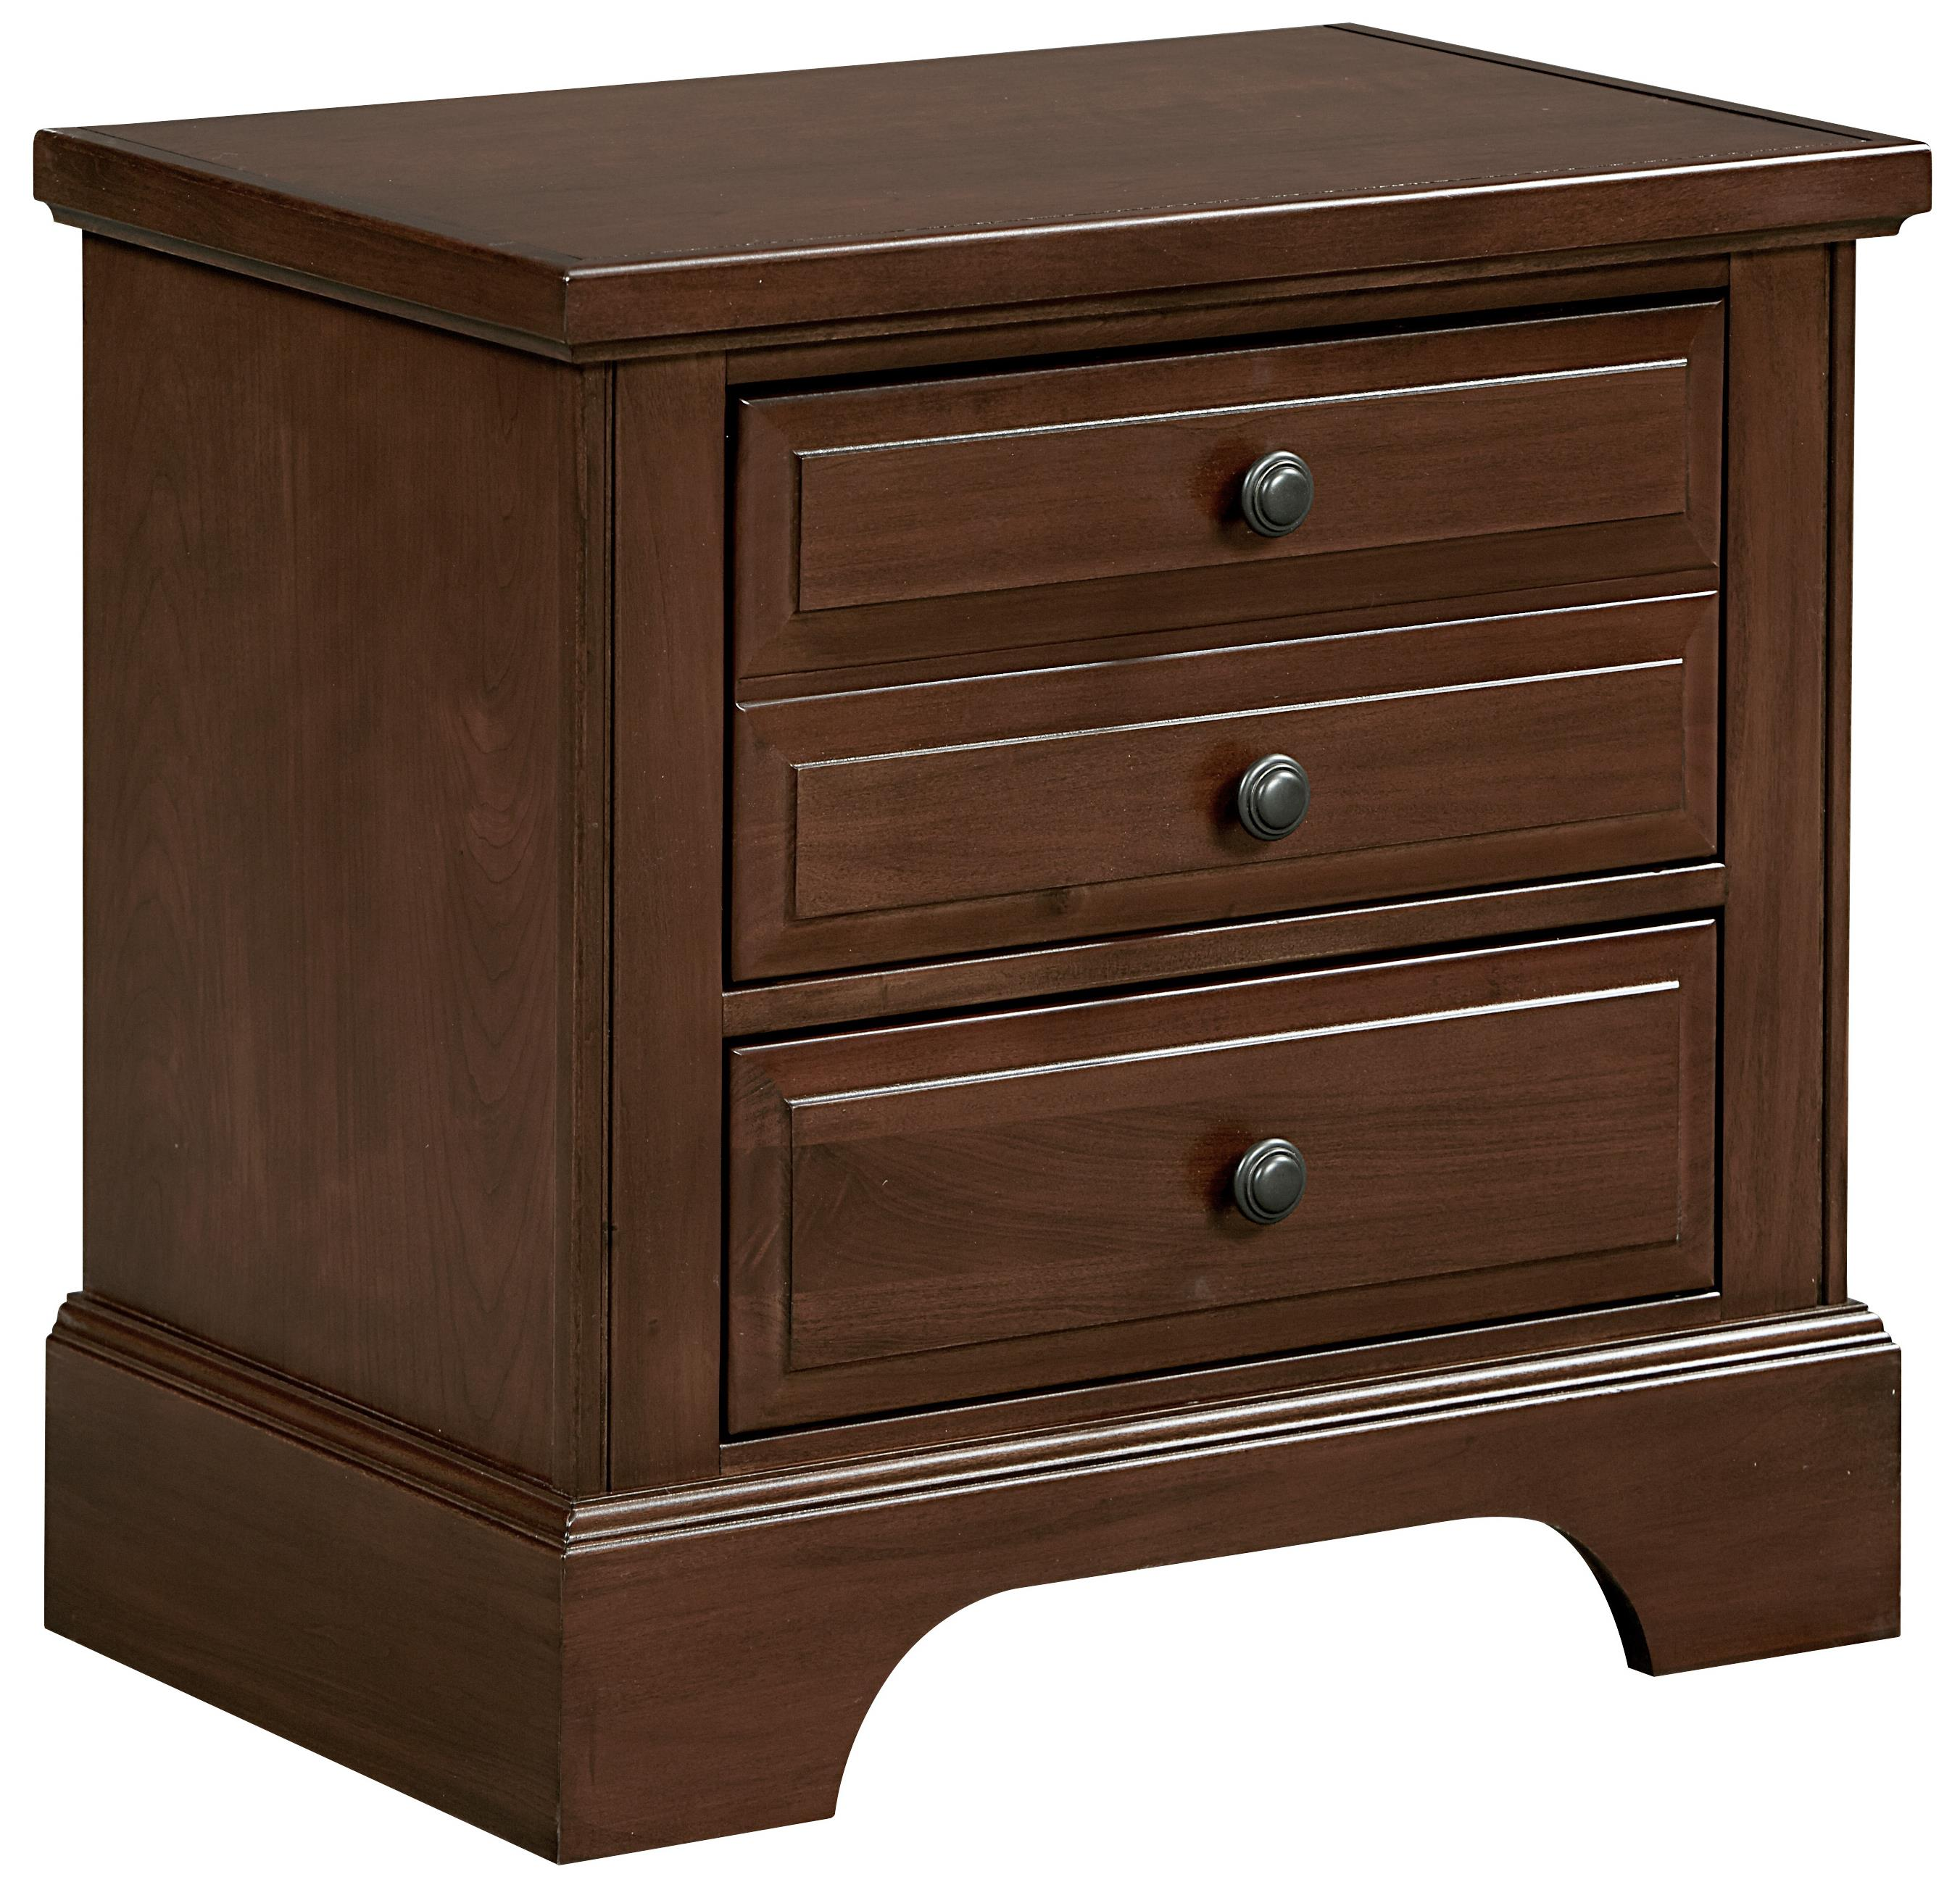 Vaughan Bassett Bedford Night Stand - 2 Drawers - Item Number: BB89-226